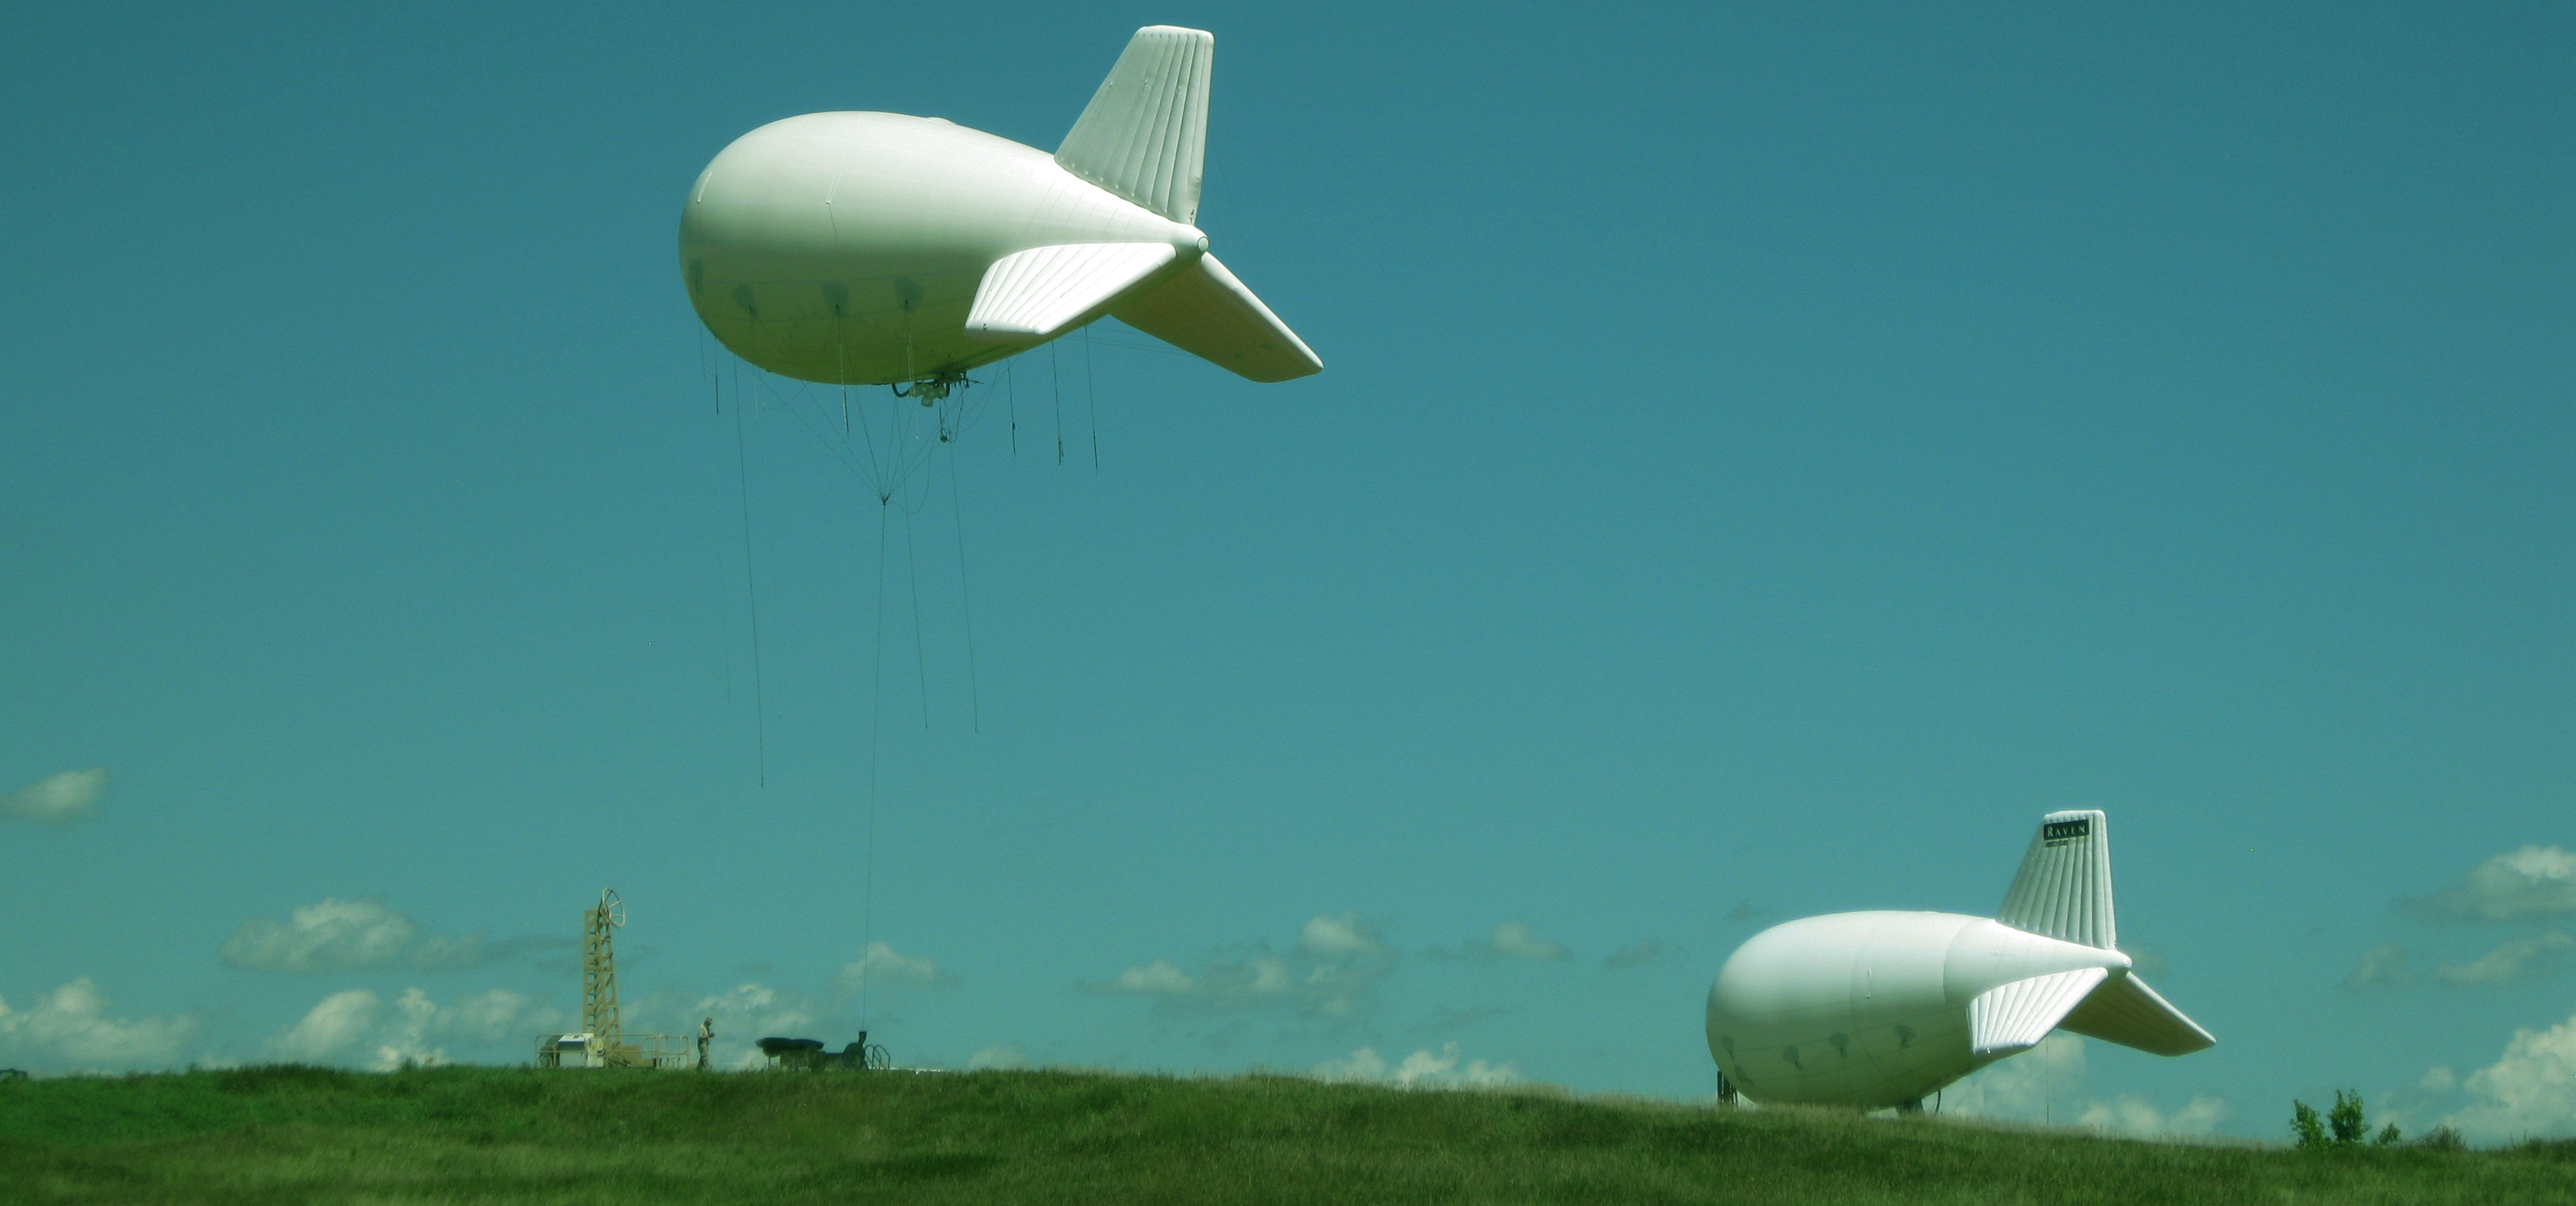 Ruby HSLAM High Strength Laminated Aerostat Material